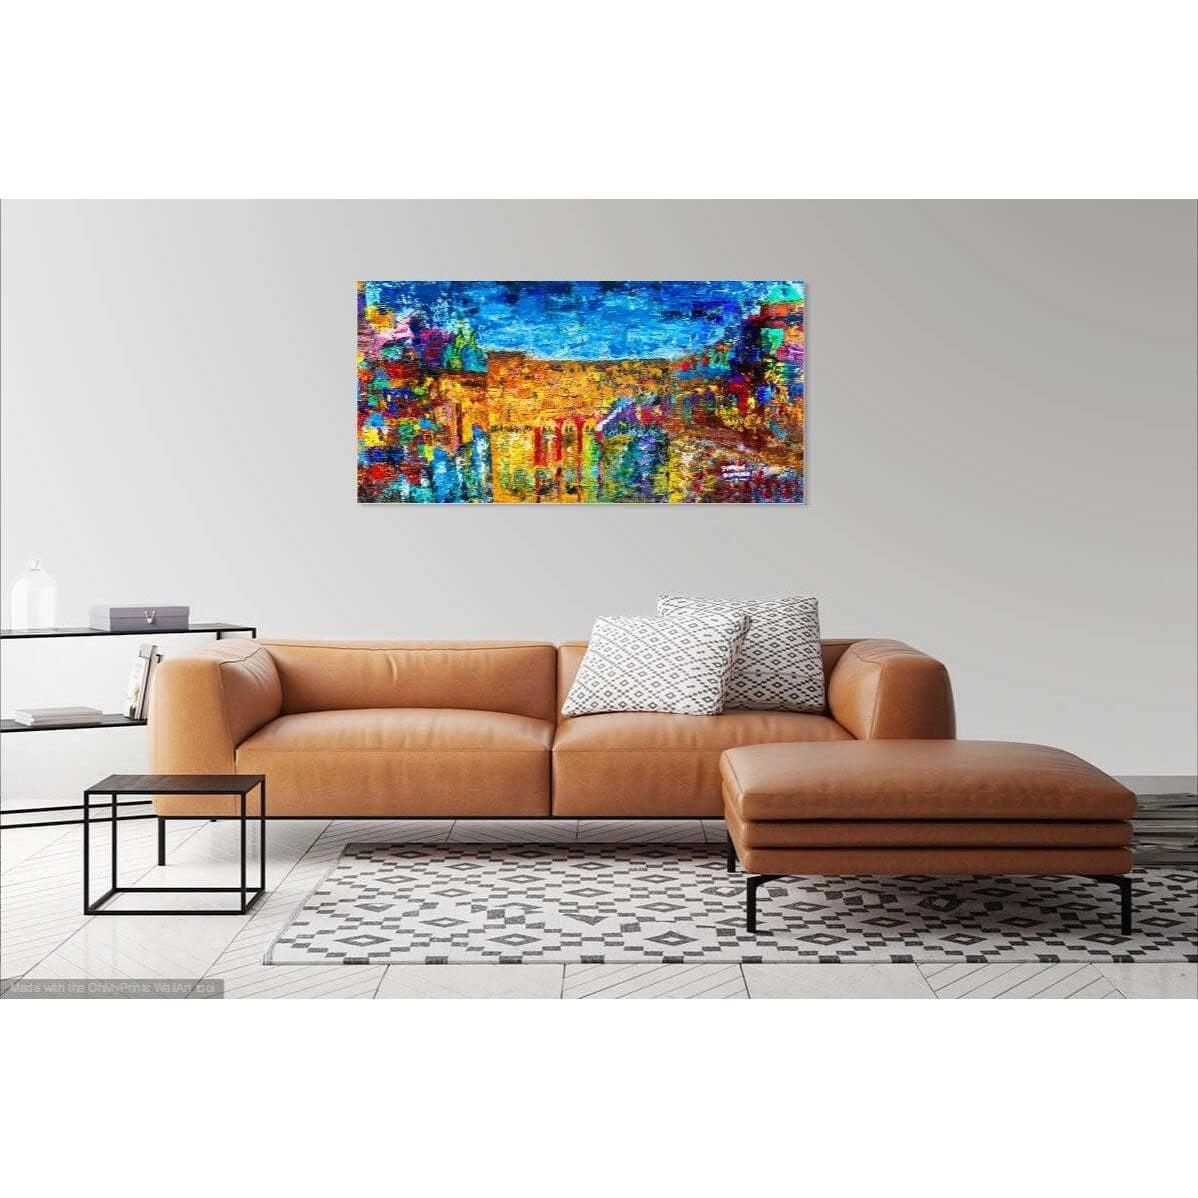 Jewish Art - THE JERUSALEM SKYLINE - Large Canvas Giclée print - Israel painting - Judaica Art - Modern Jewish Art - Giclée Fine Art Giclée Print Canvas - Without Pasuk - sharonschurderart - jewish_art, jewish_wall_art, judaica_art